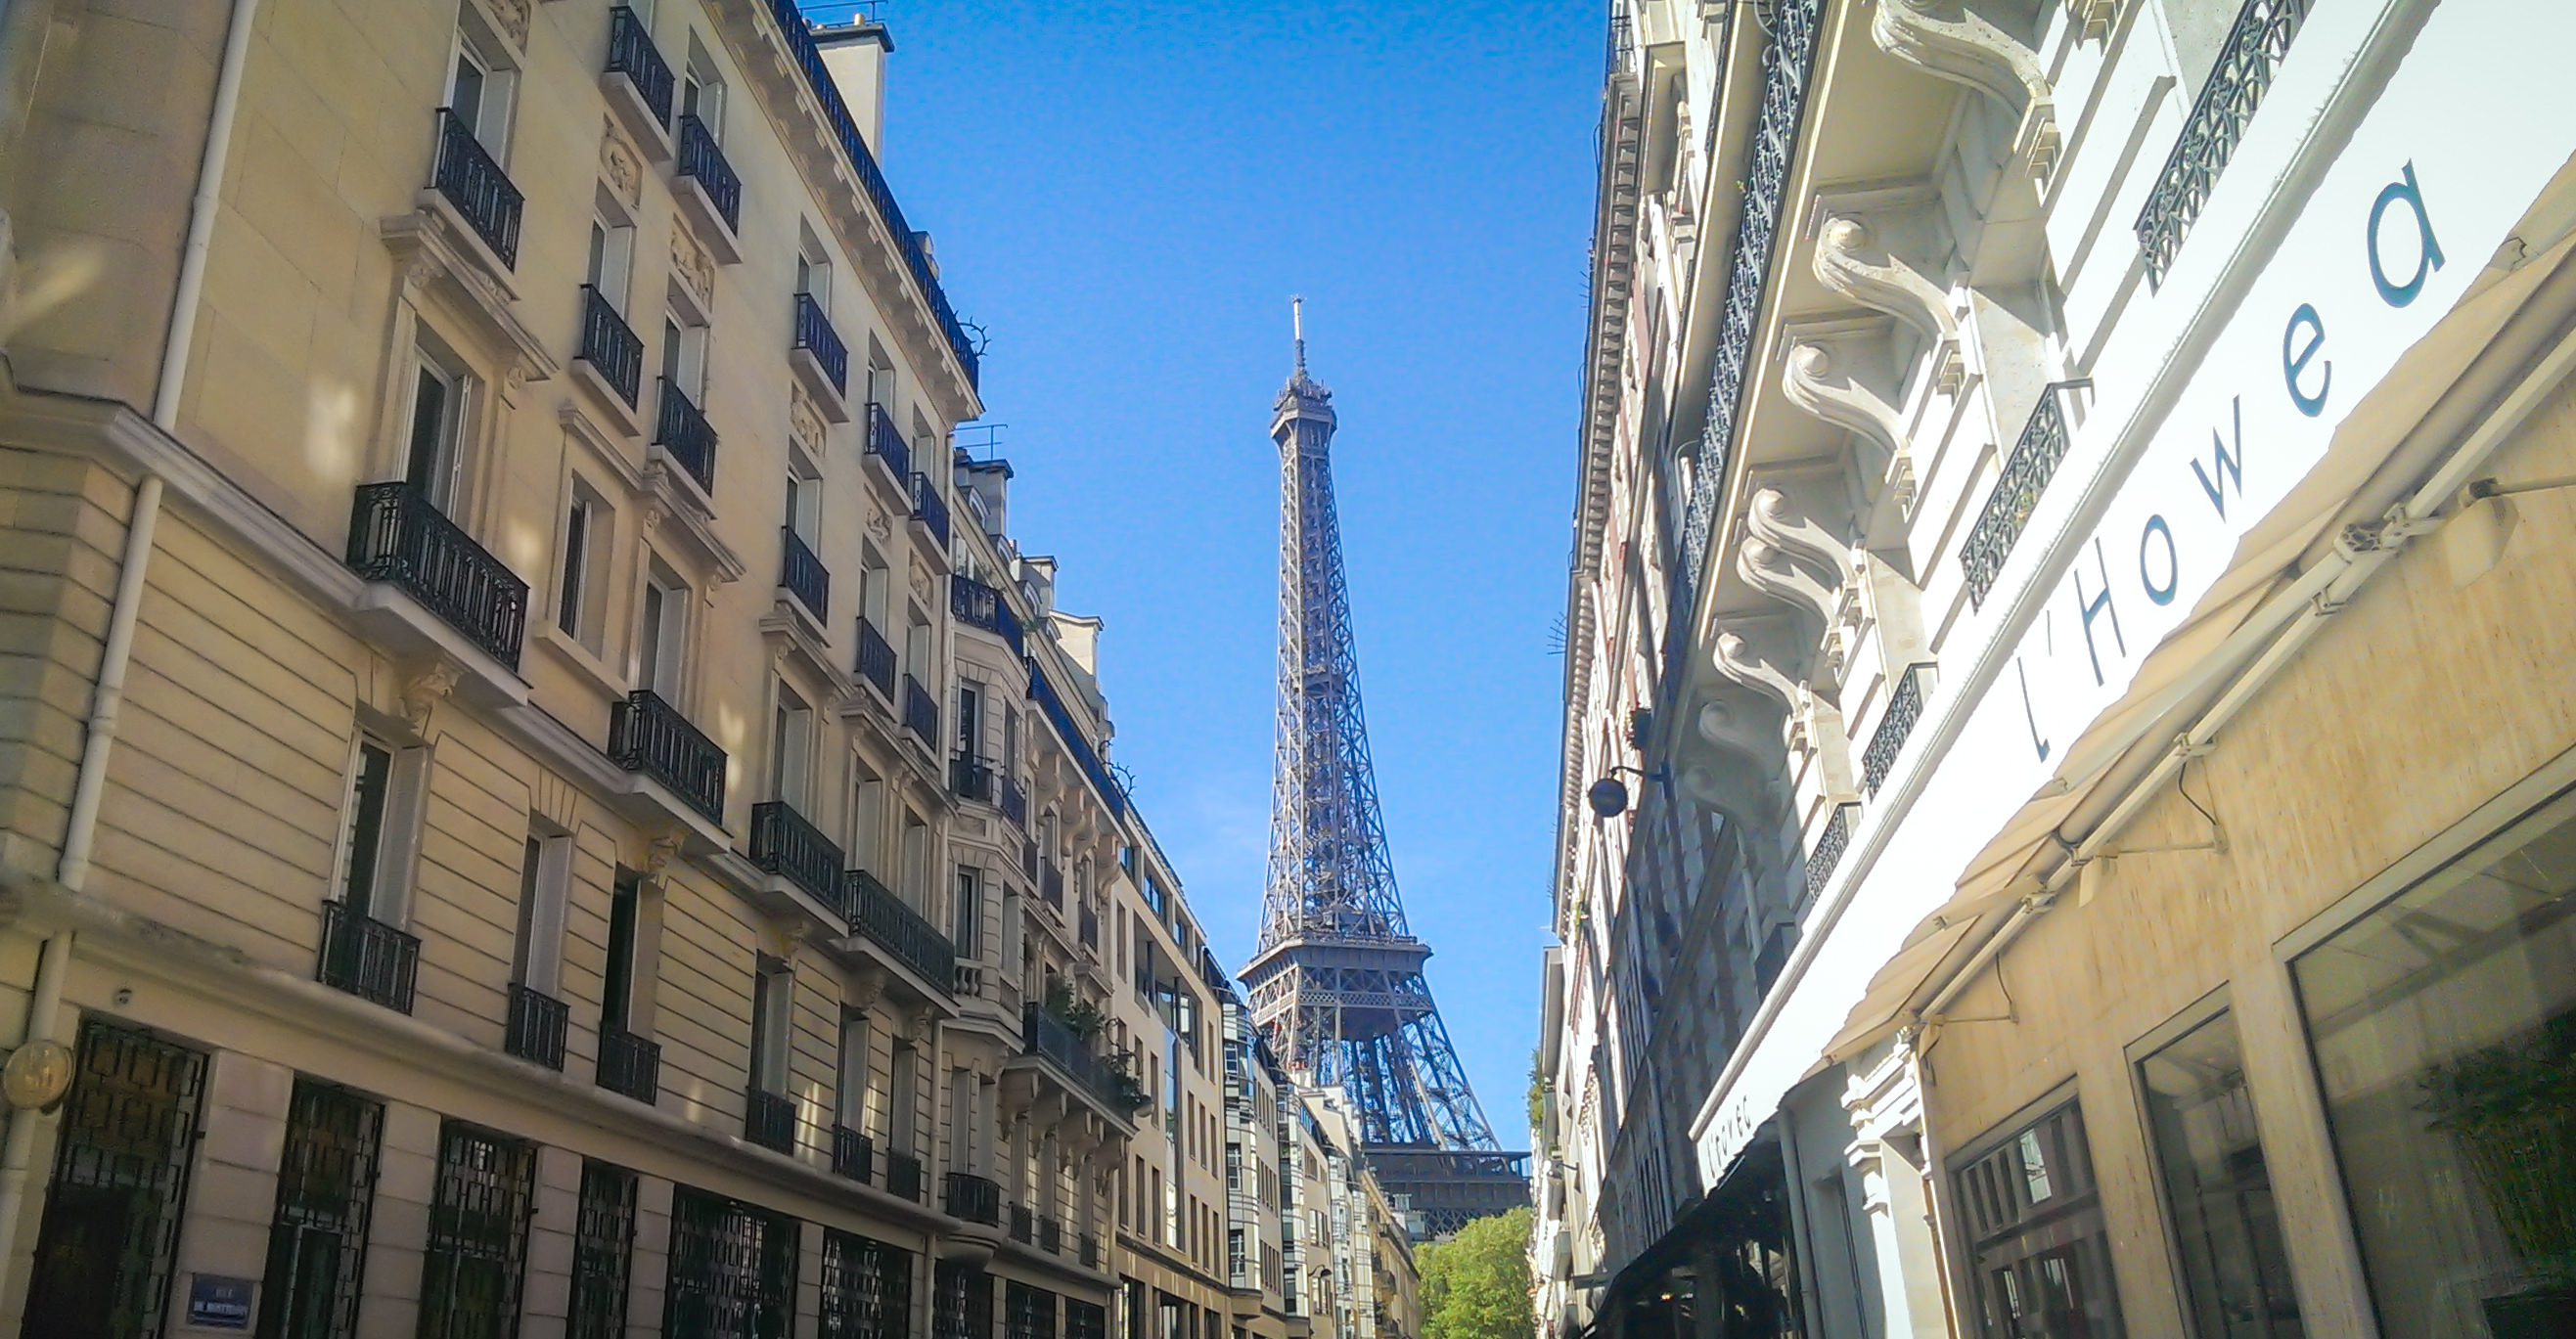 eiffel tower france street wallpaper background